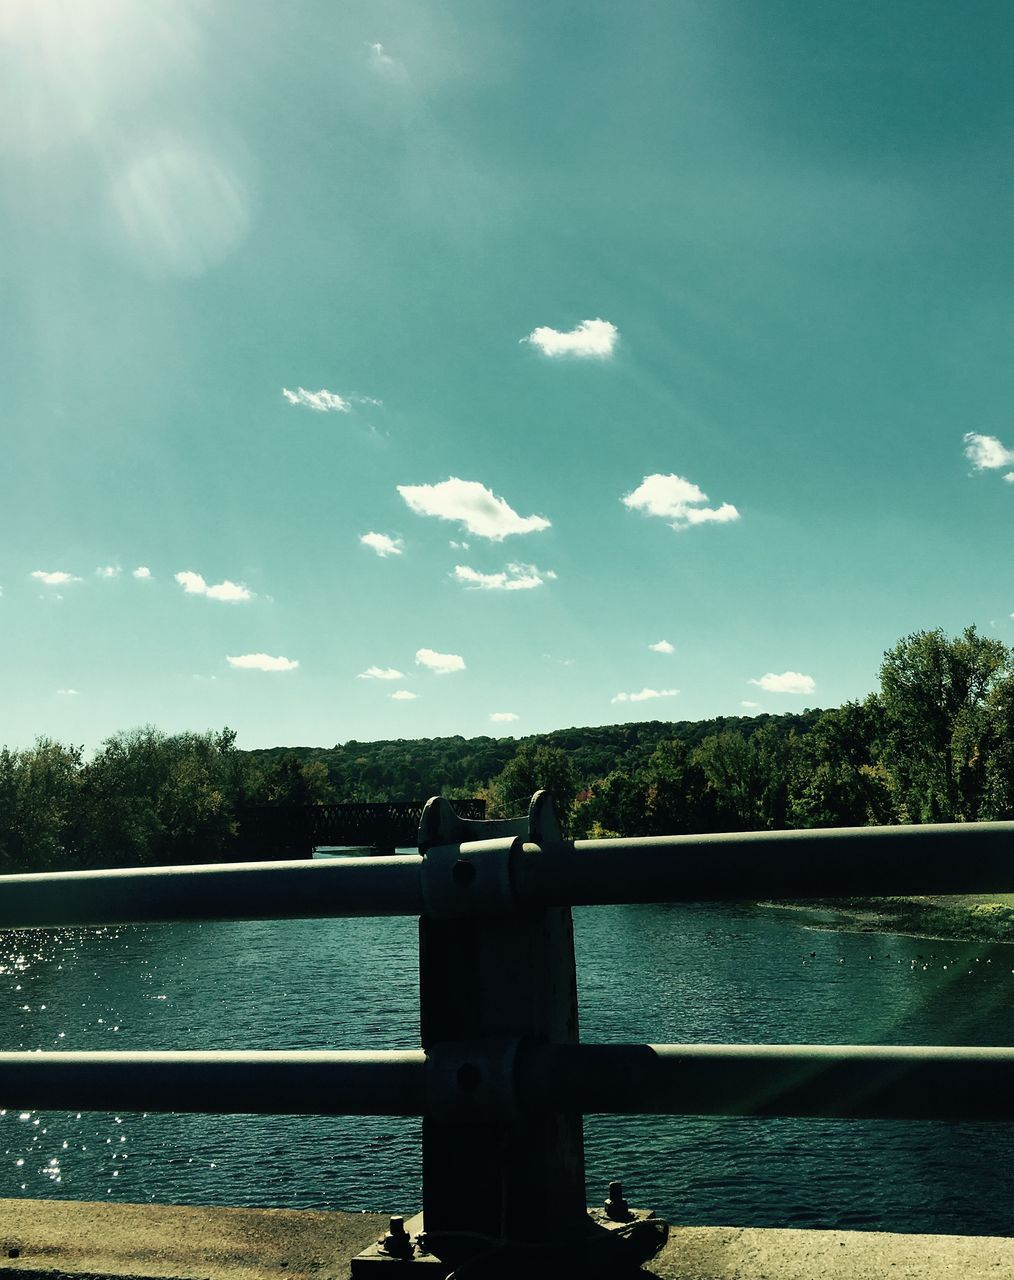 sky, water, railing, river, tree, no people, day, outdoors, nature, close-up